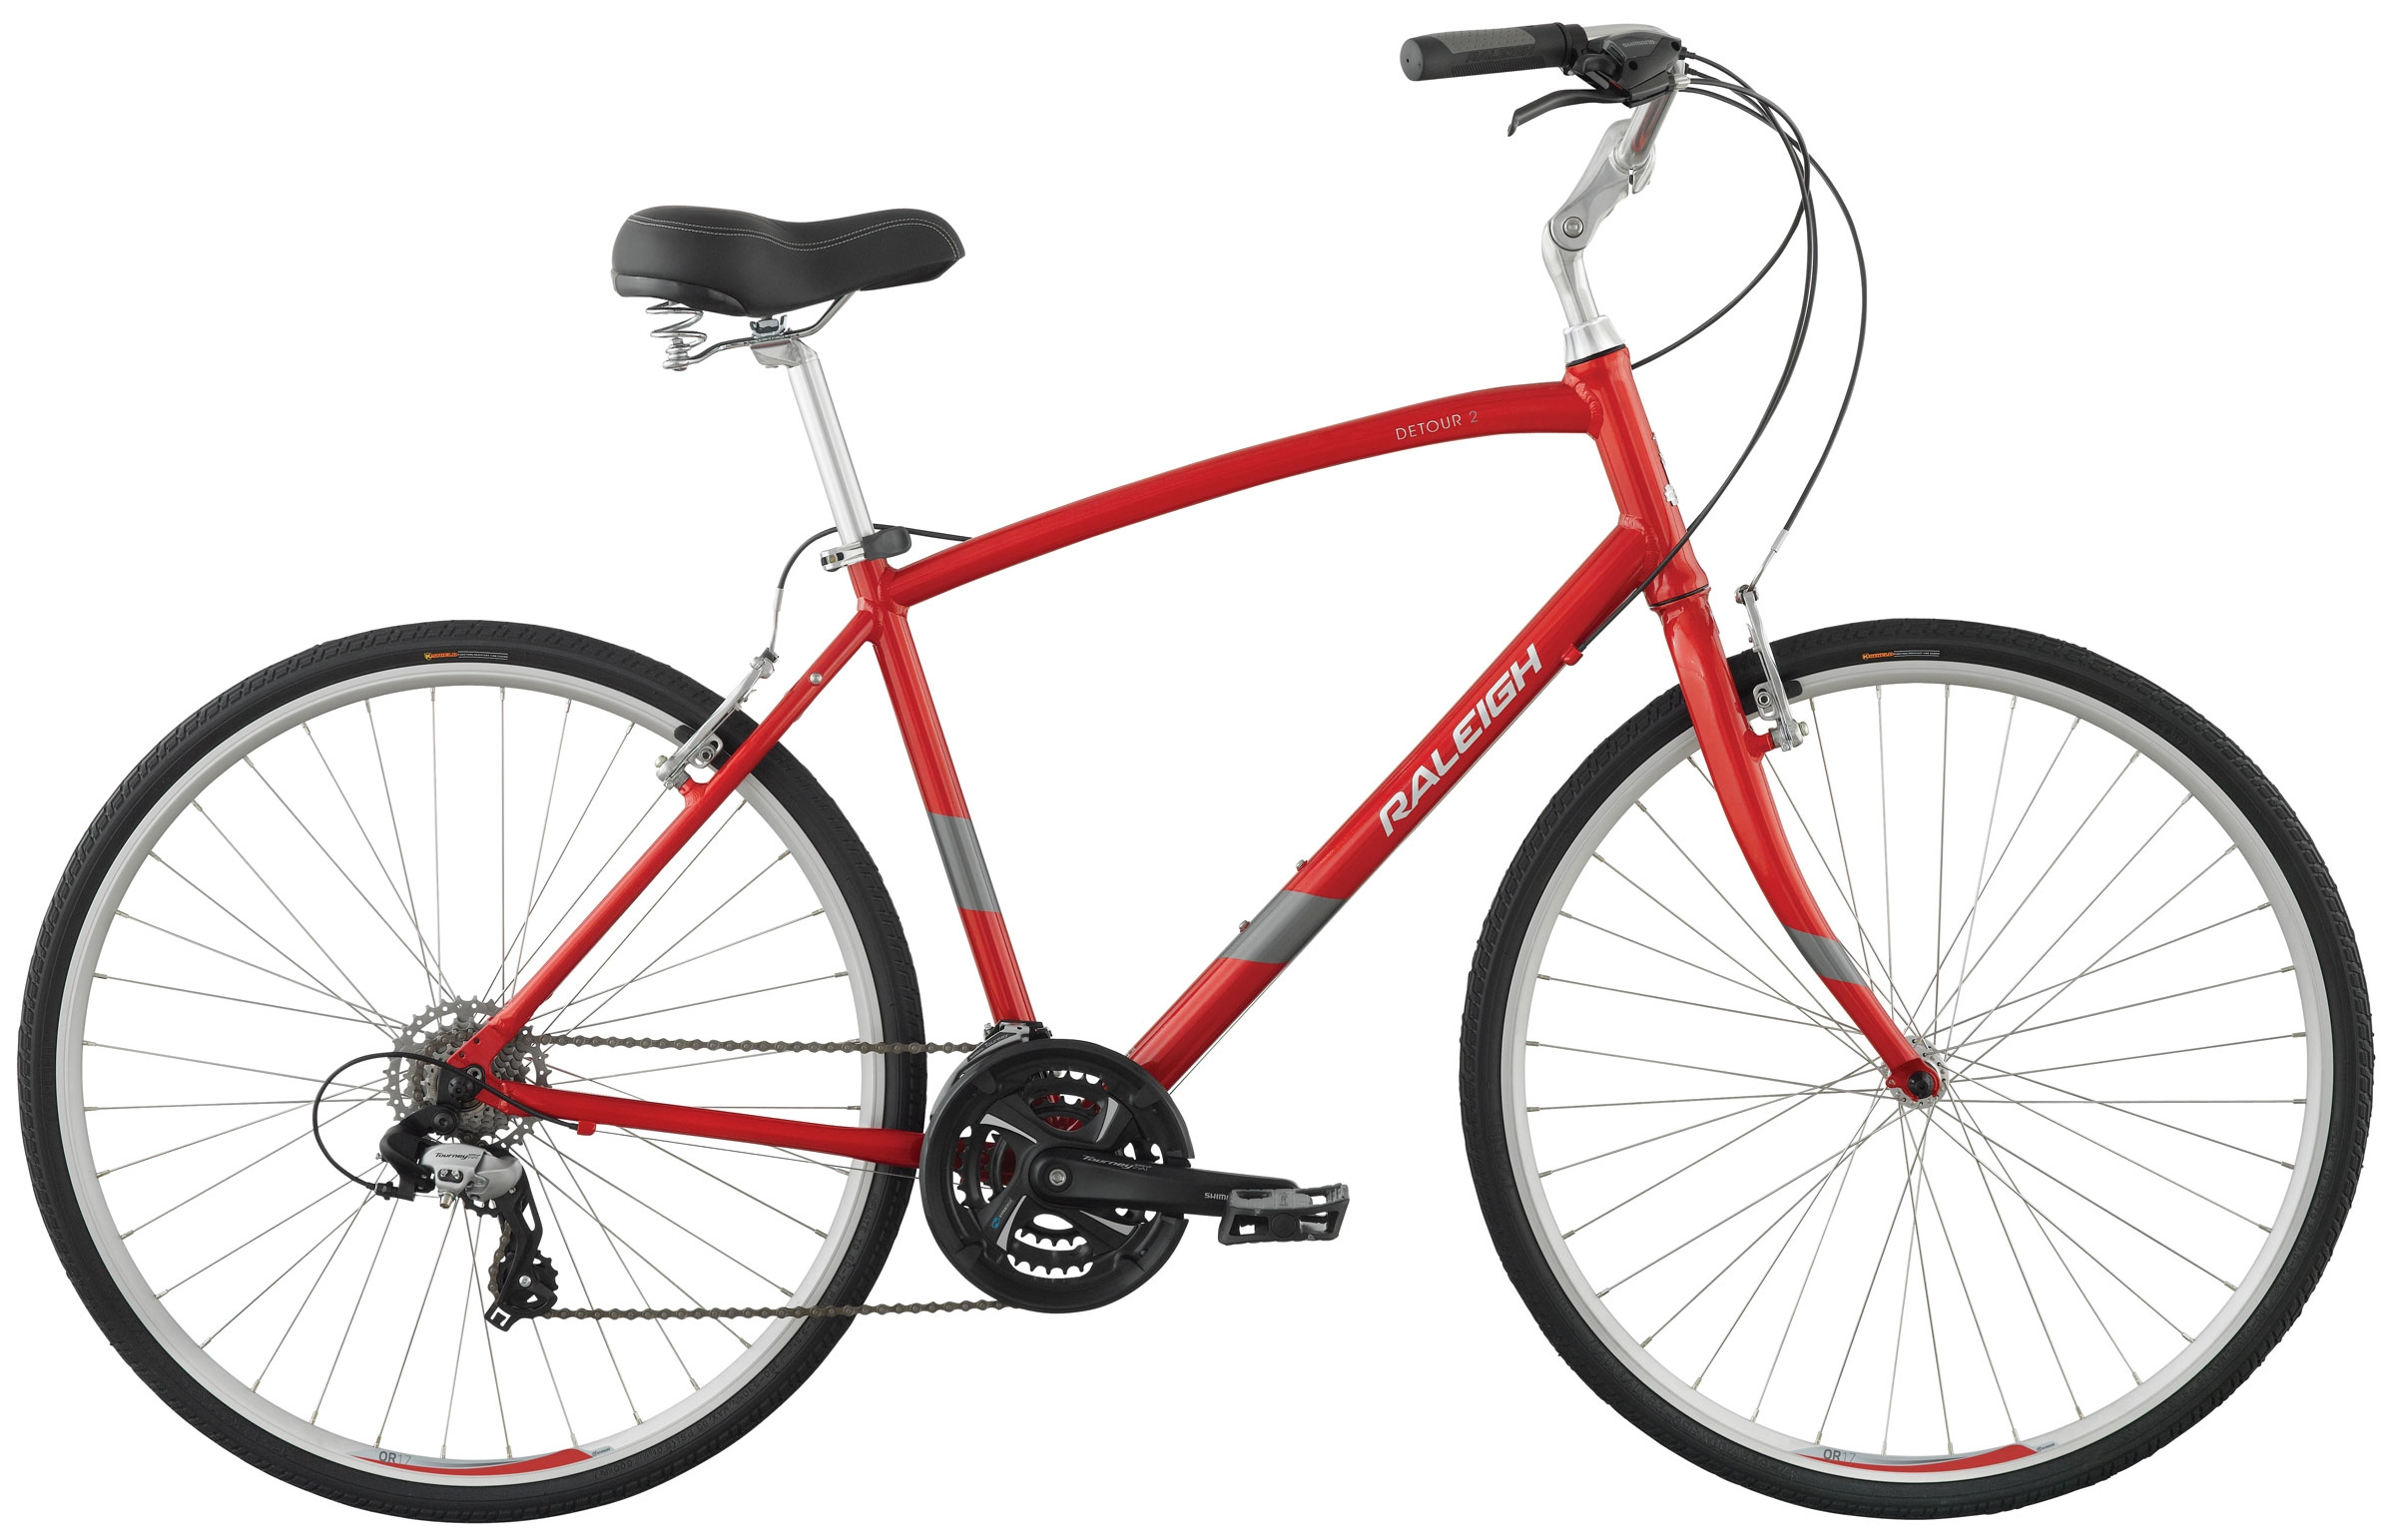 Raleigh Detour 2  - A true 'hybrid' bicycle also available as a step-through